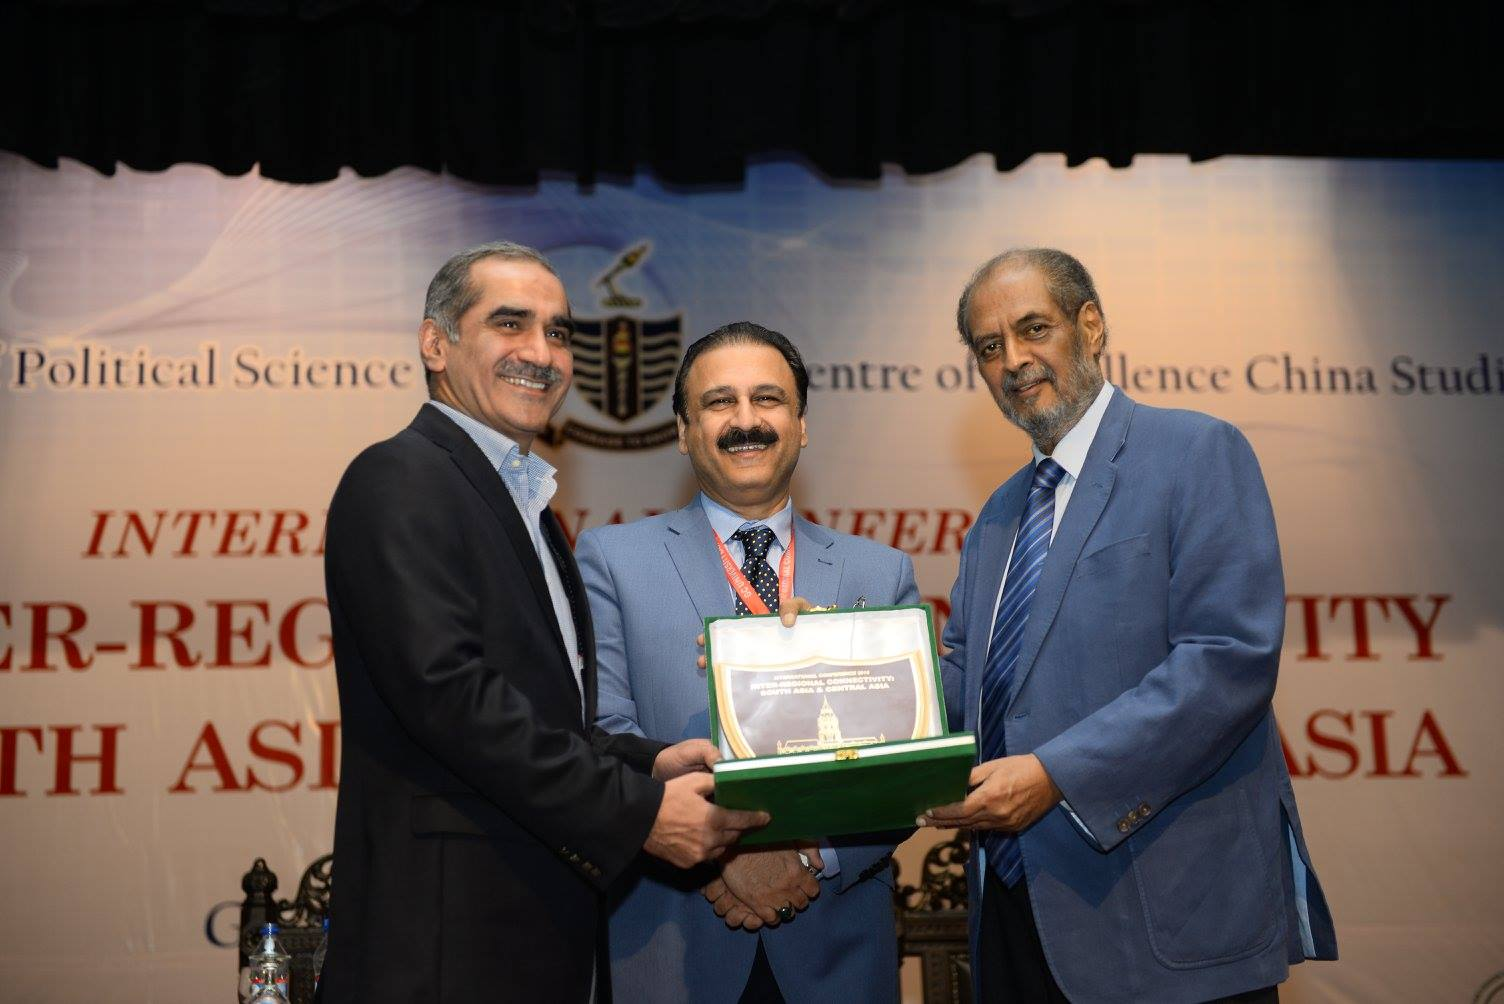 Vice Chancellor presenting the souvenir to Chief Guest at Concluding Session